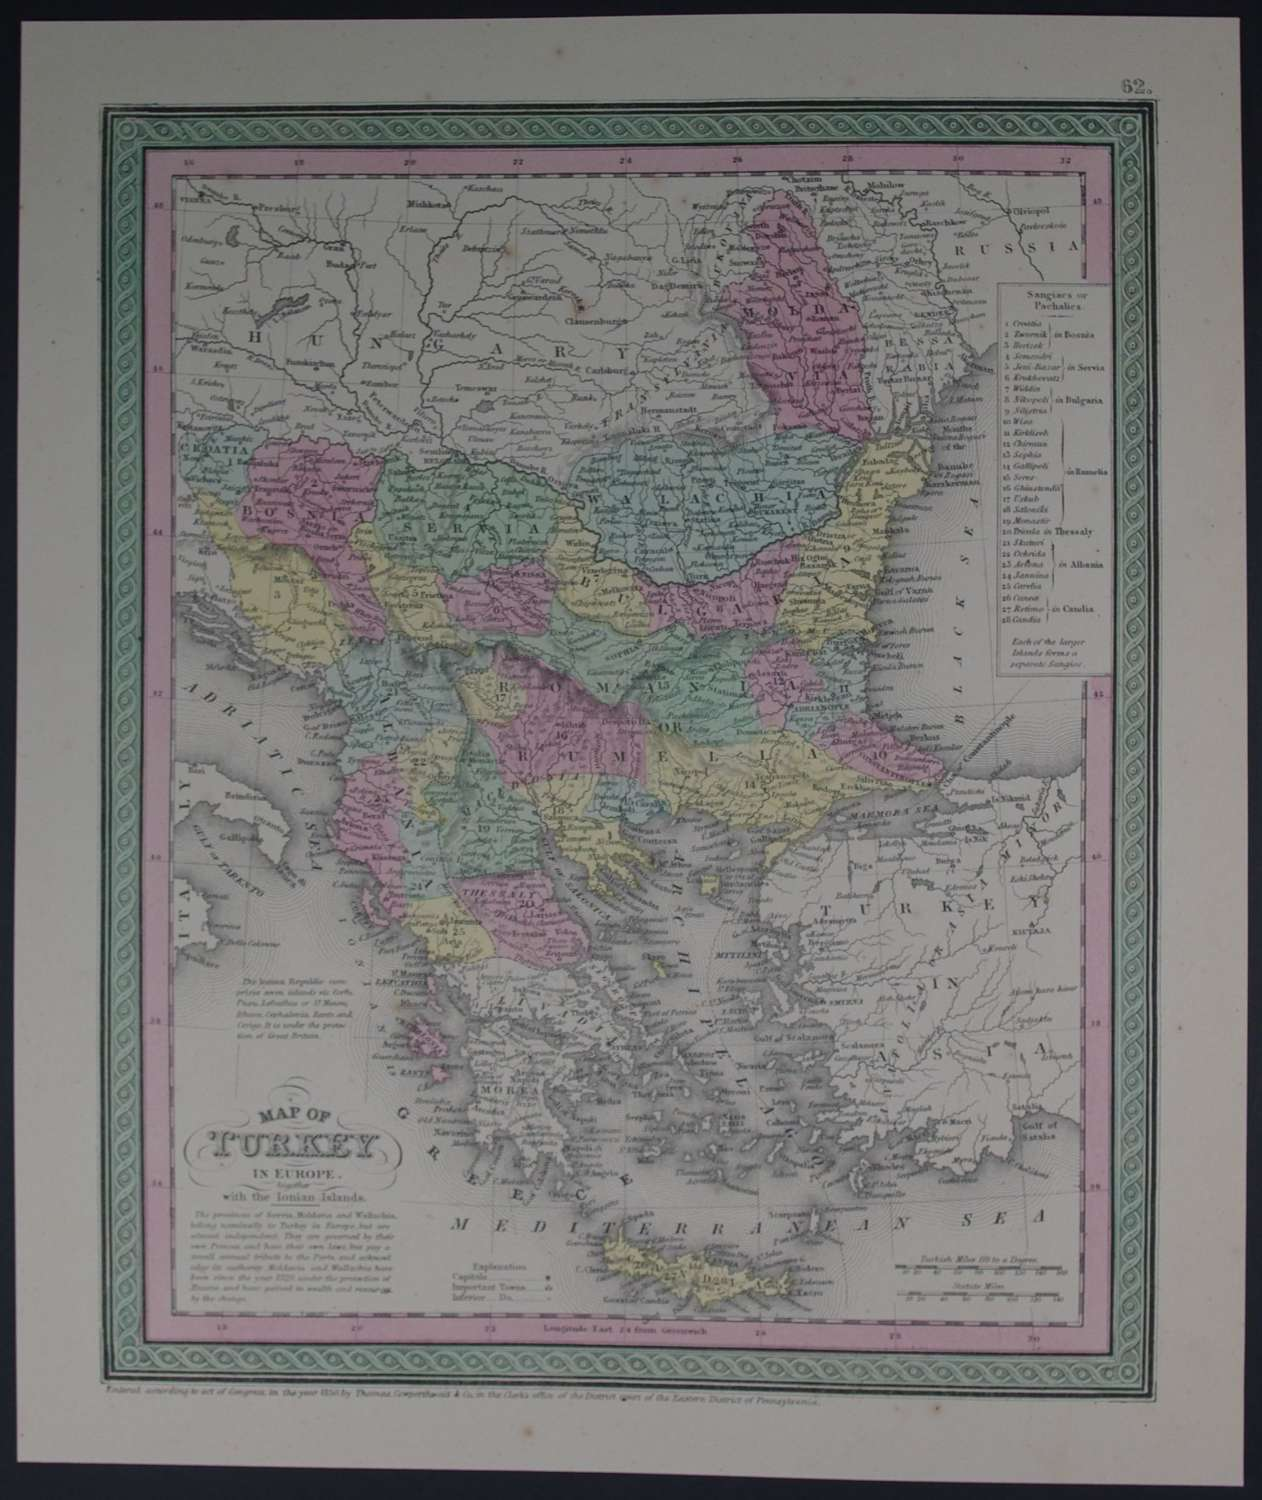 Map of Turkey in Europe by Thomas Cowperthwait & Co